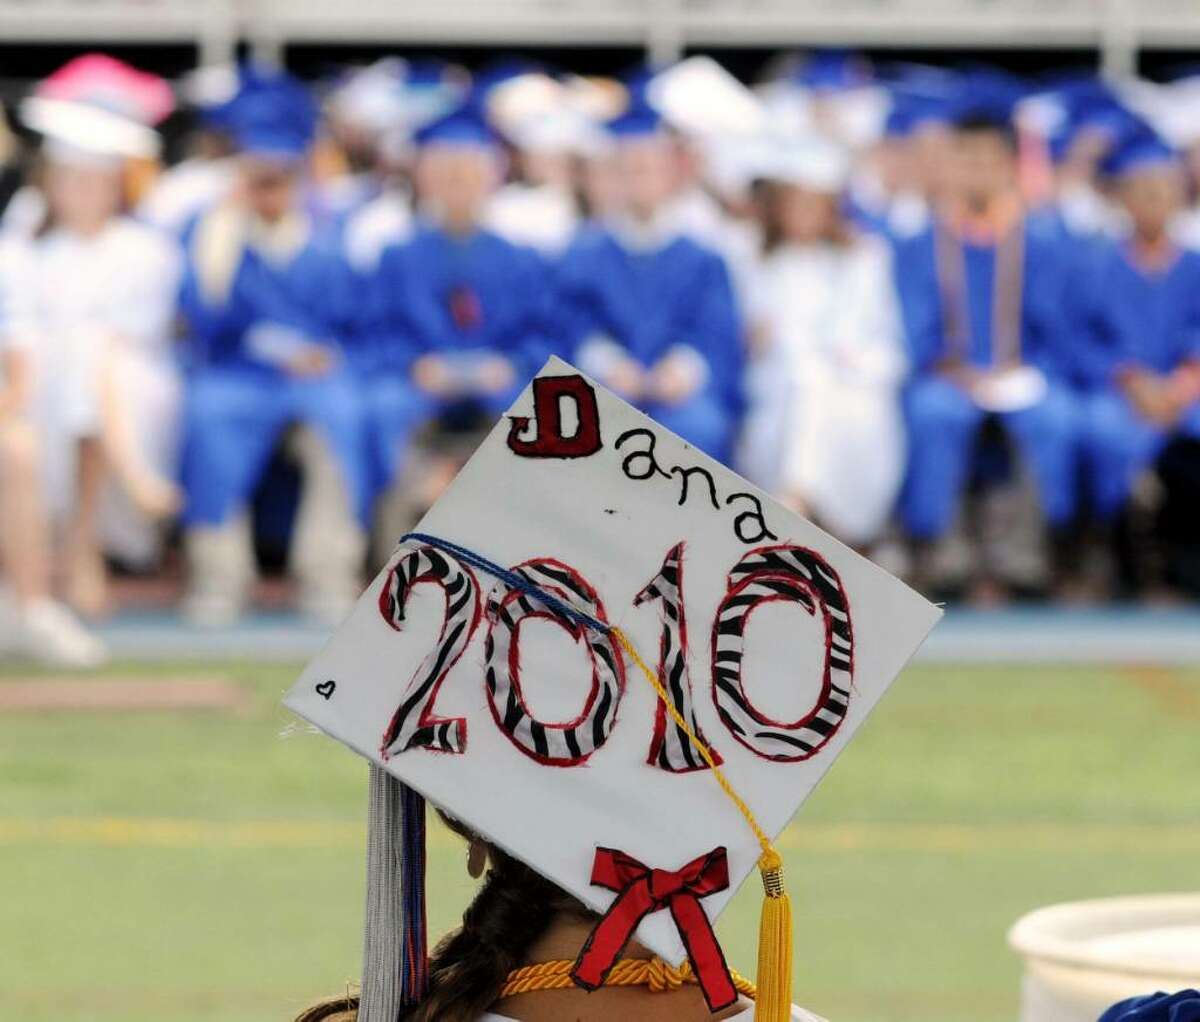 Dana Angotta, the 2010 graduating classes class president, wears her personalized graduation cap proudly during the Danbury High School commencement exercises on Wednesday June 23, 2010 at Danbury High School. In all there were 648 graduates.